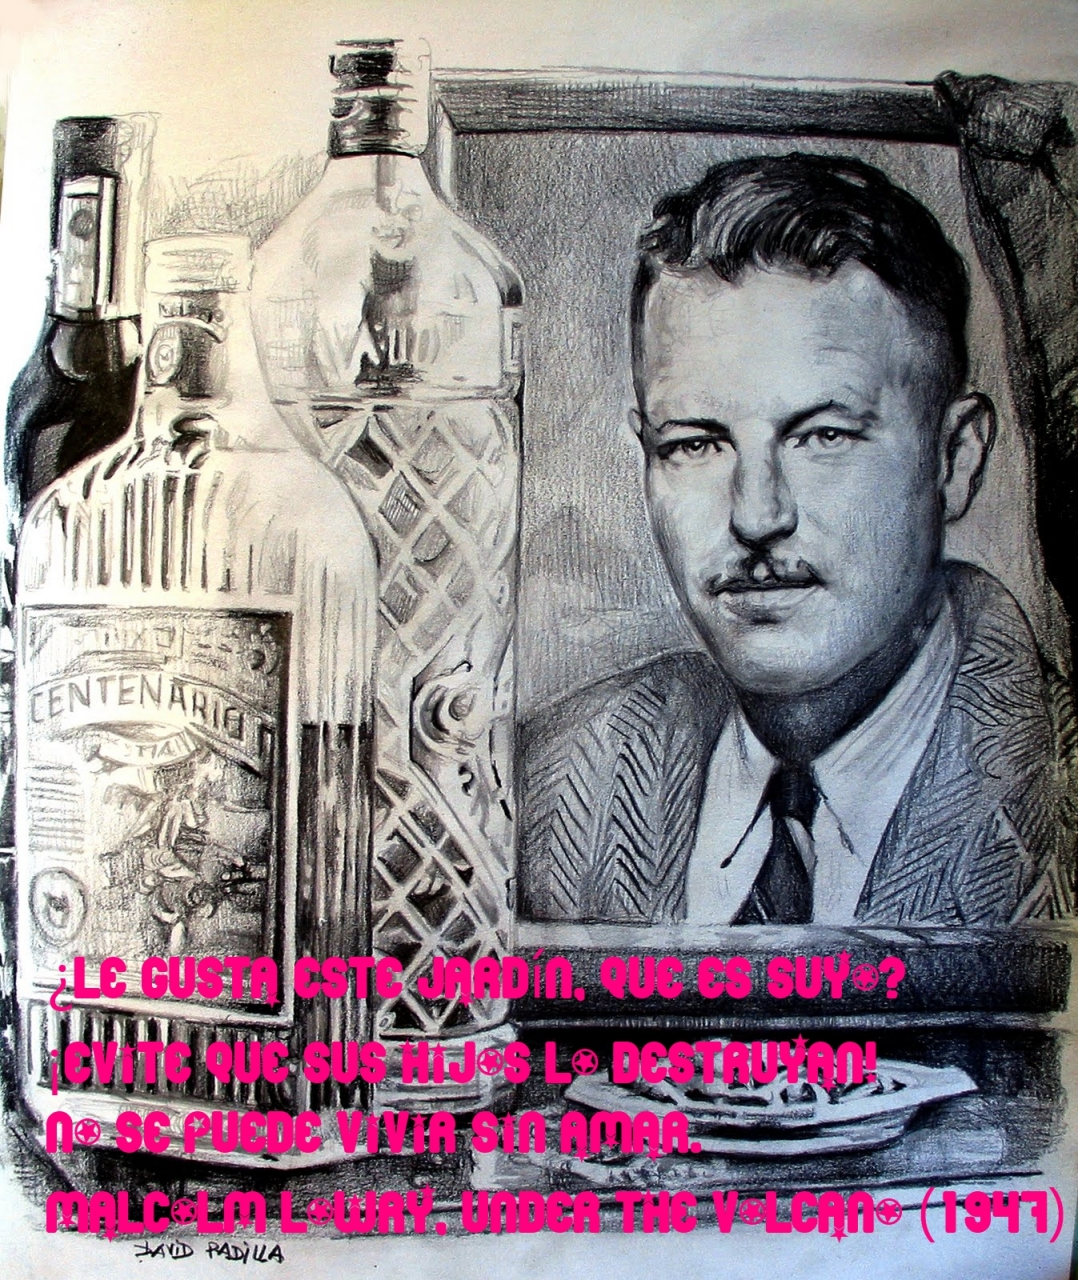 Malcolm Lowry, Under the Volcano (1947)